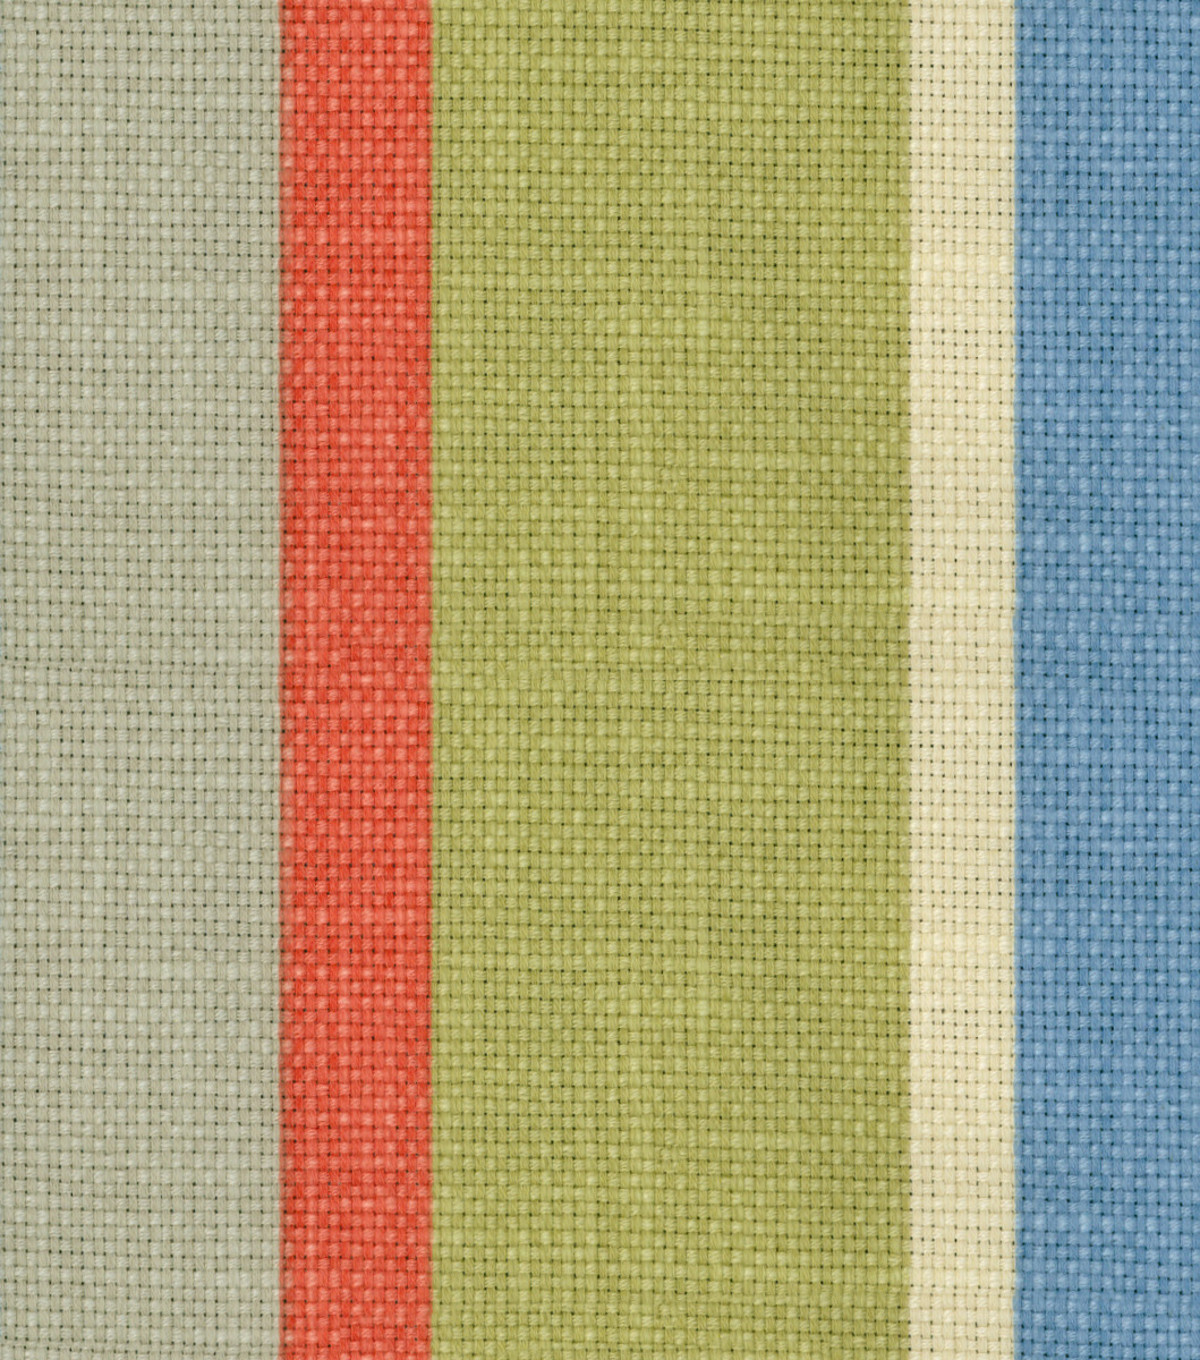 Home Decor 8\u0022x8\u0022 Fabric Swatch-Pkaufmann Promenade Patriot